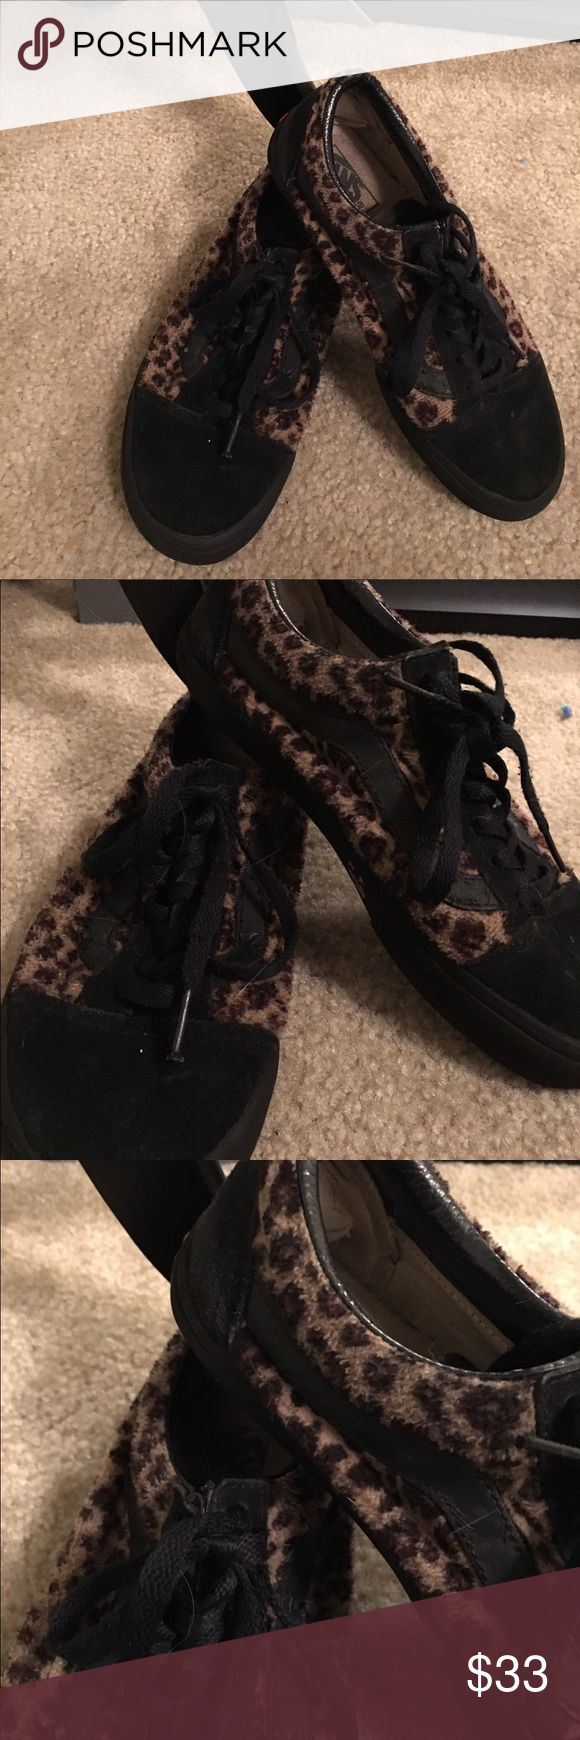 Rare leopard Vans Rare vans with leopard print used but in awesome condition- haven't worn in a few years Vans Shoes Sneakers